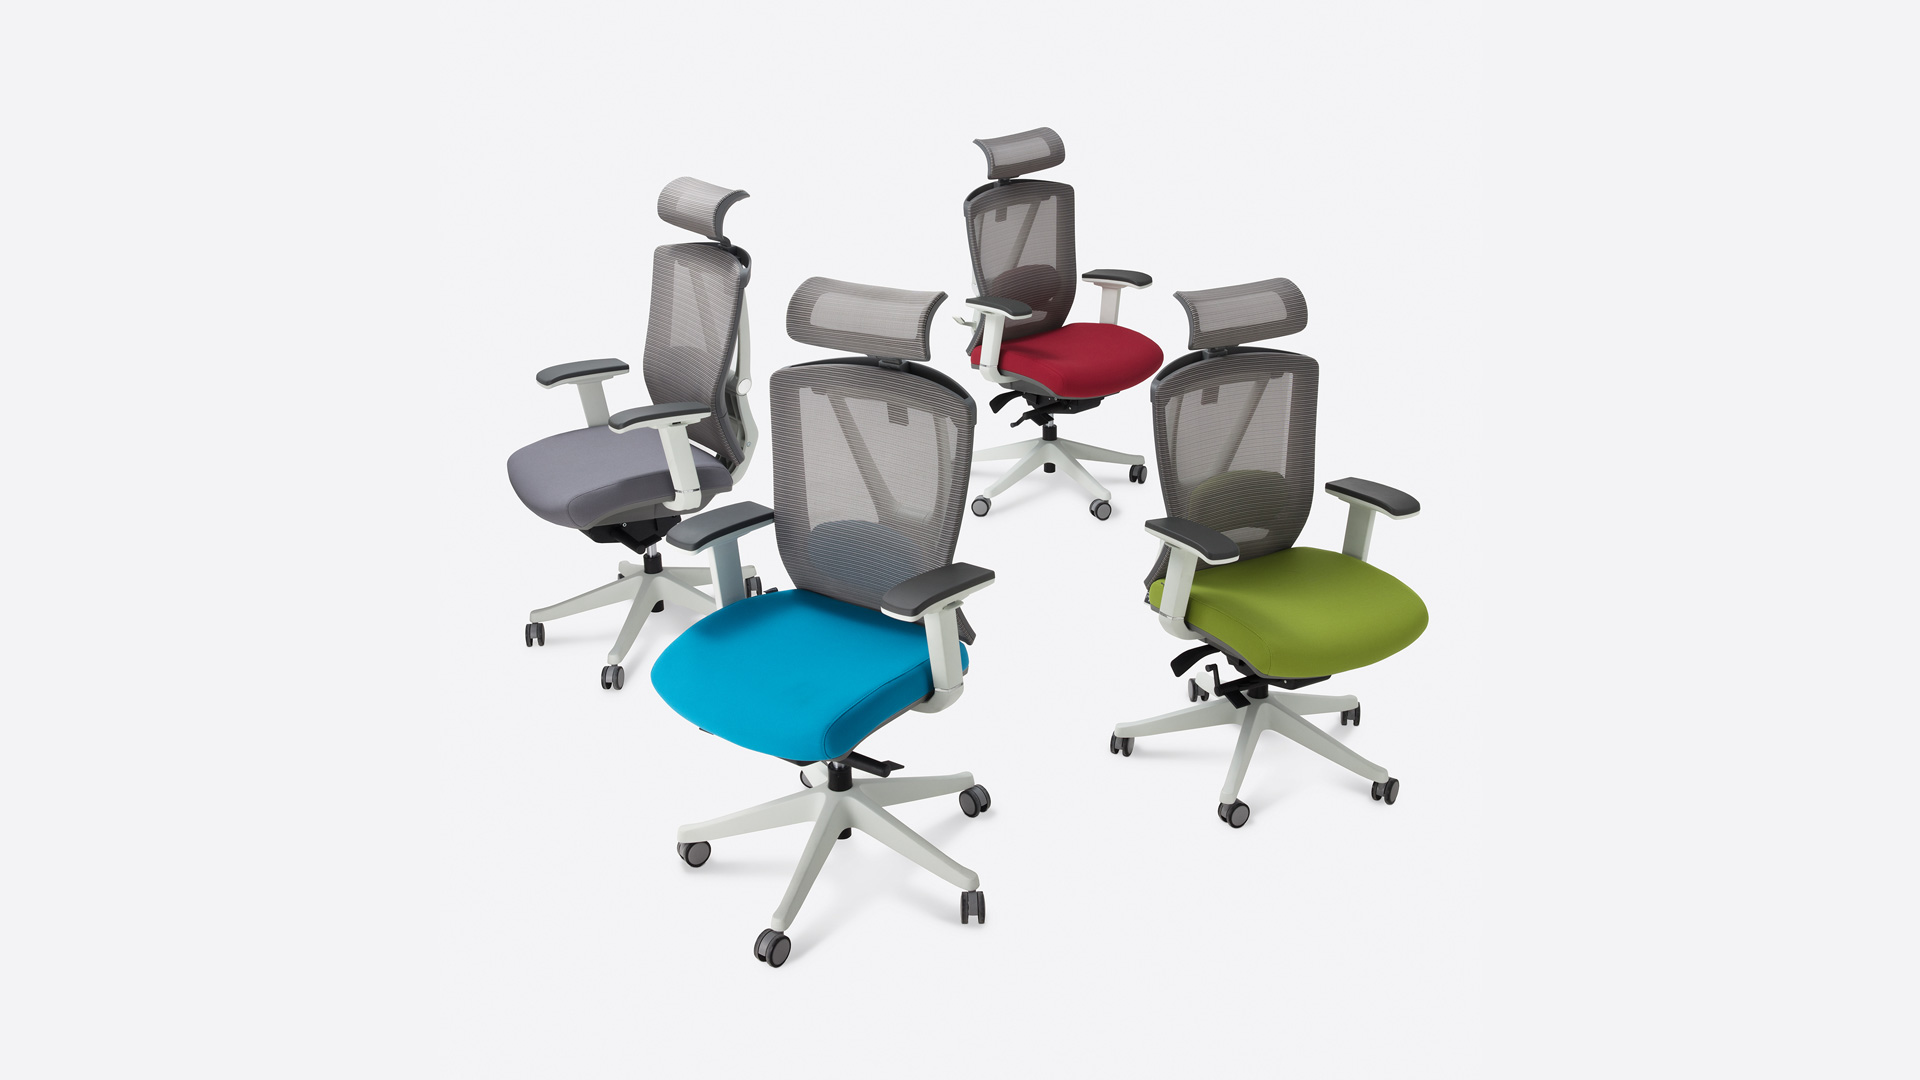 Why the ErgoChair 2 is Considered One of the Best Ergonomic Office Chairs